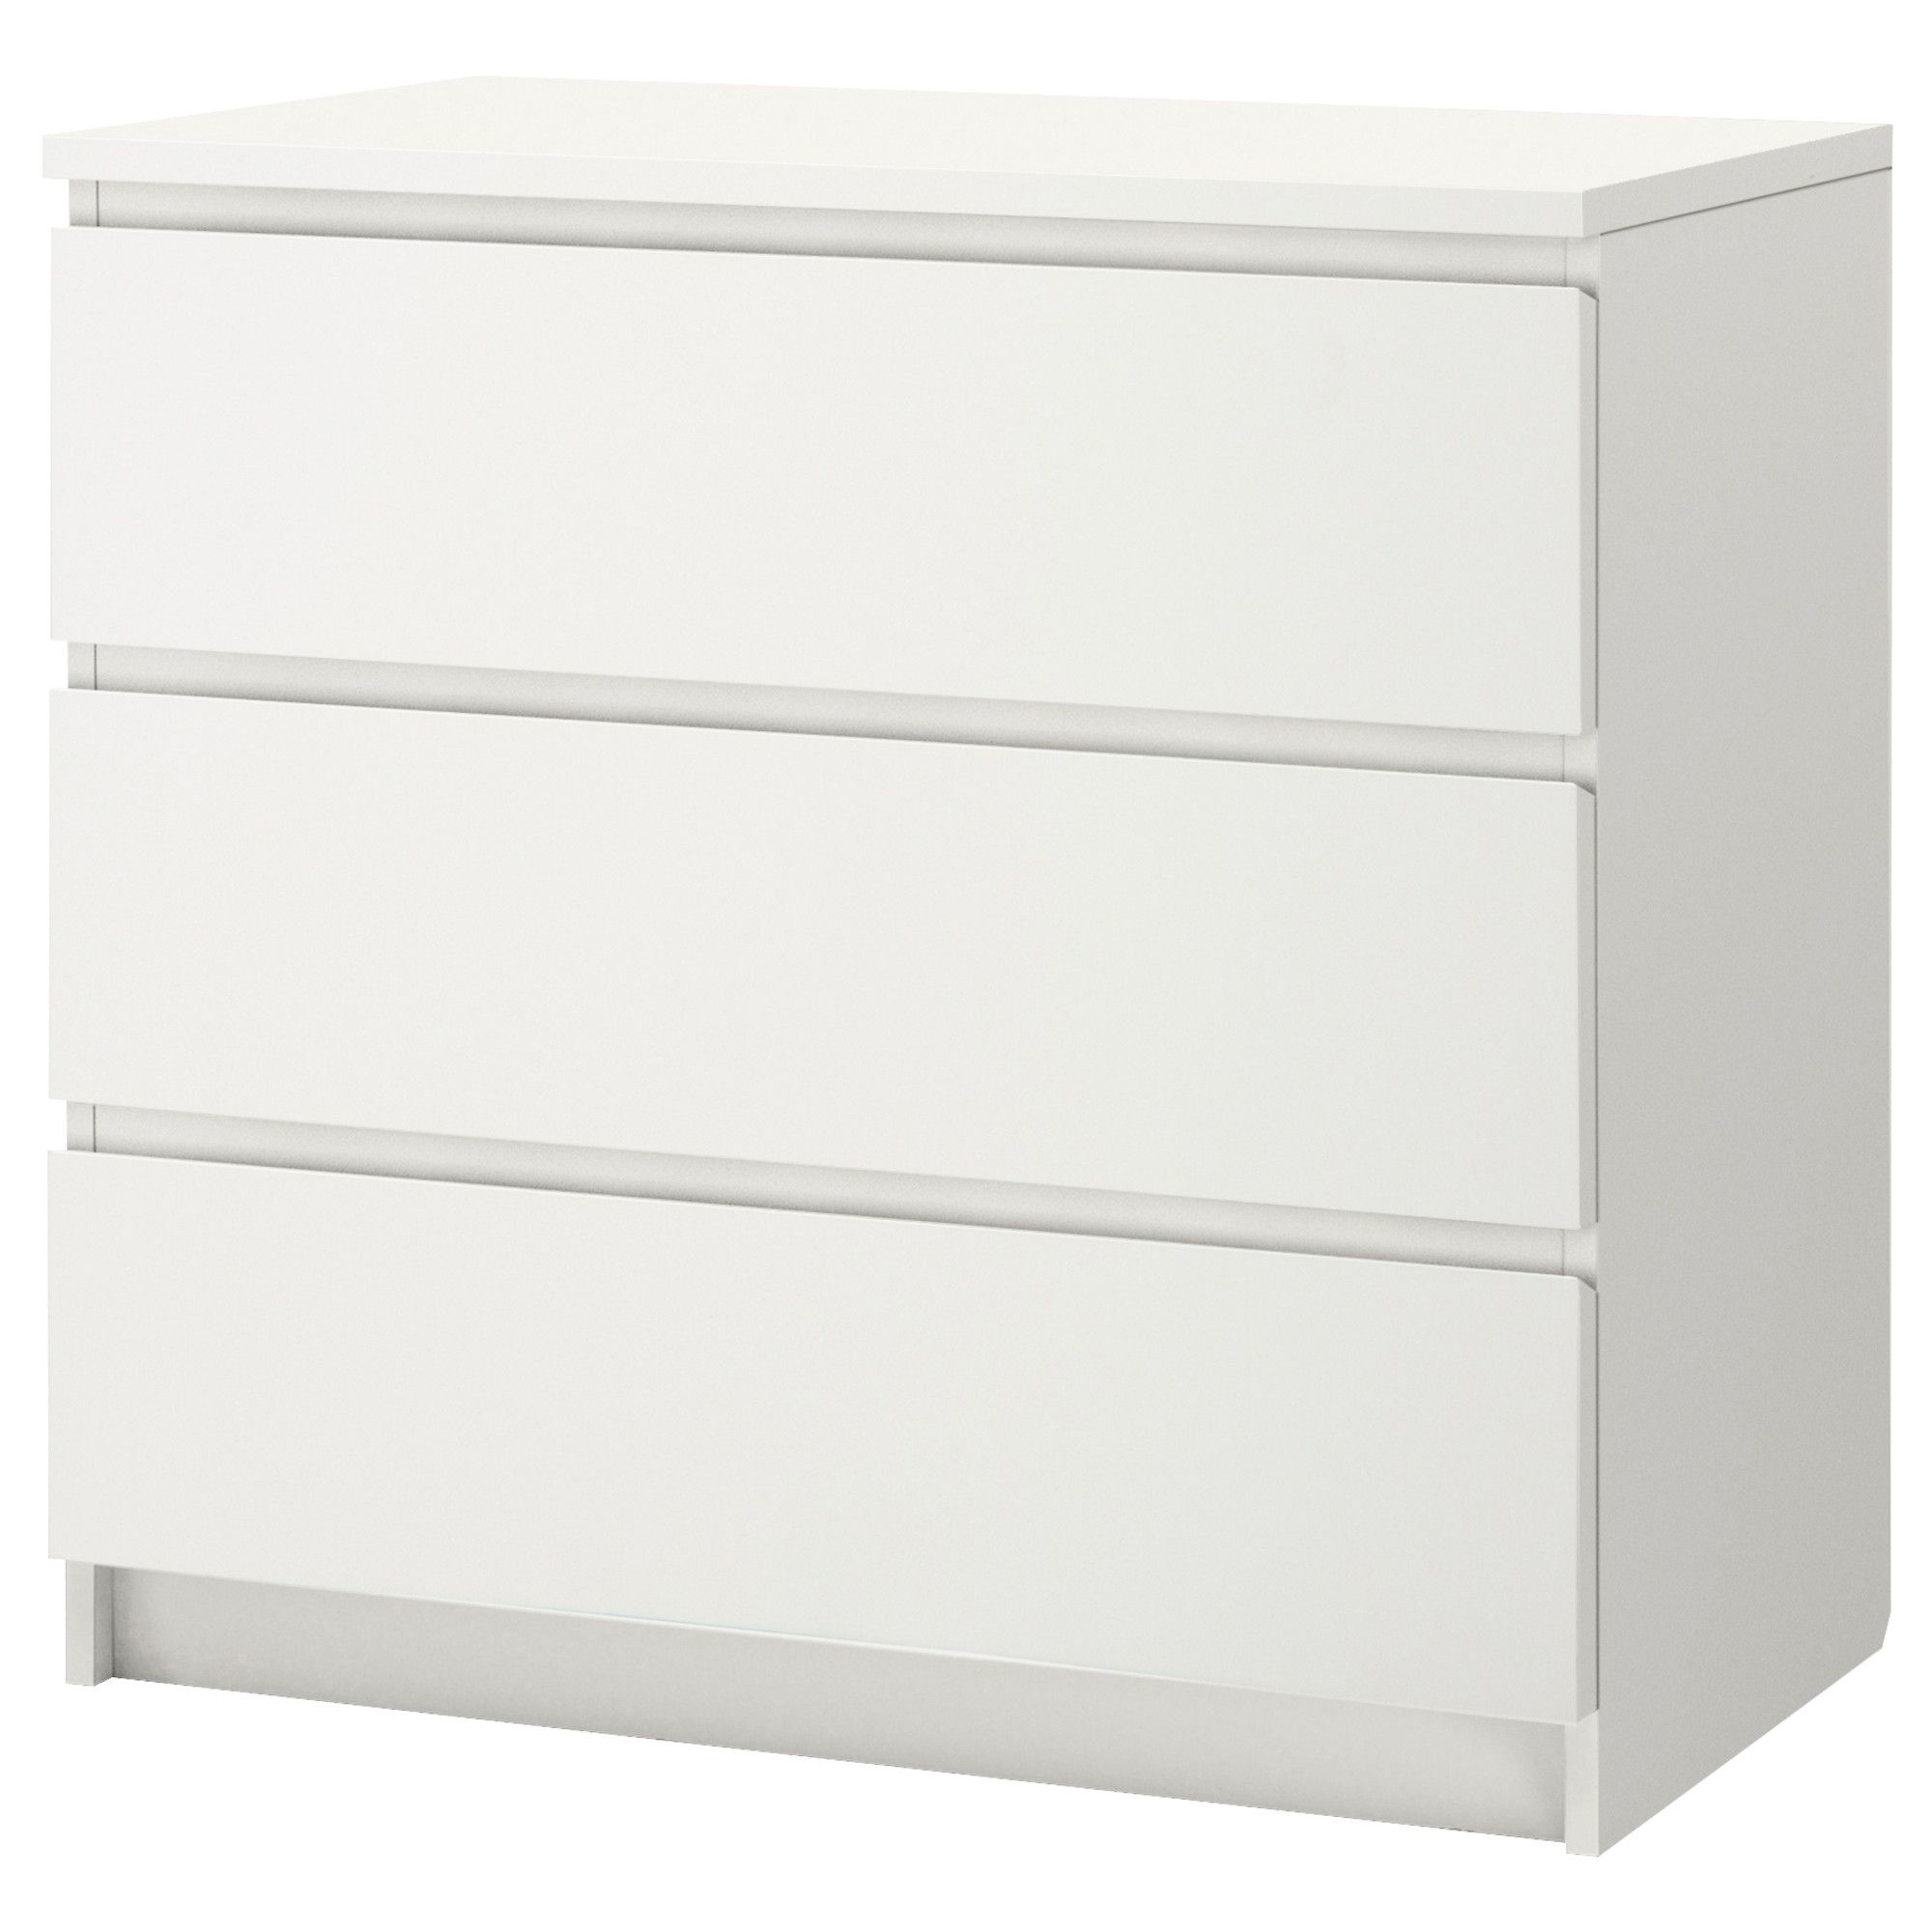 ikea malm 3 drawer chest white 31 5 8x30 3 4 smooth running drawers with pull out stop. Black Bedroom Furniture Sets. Home Design Ideas